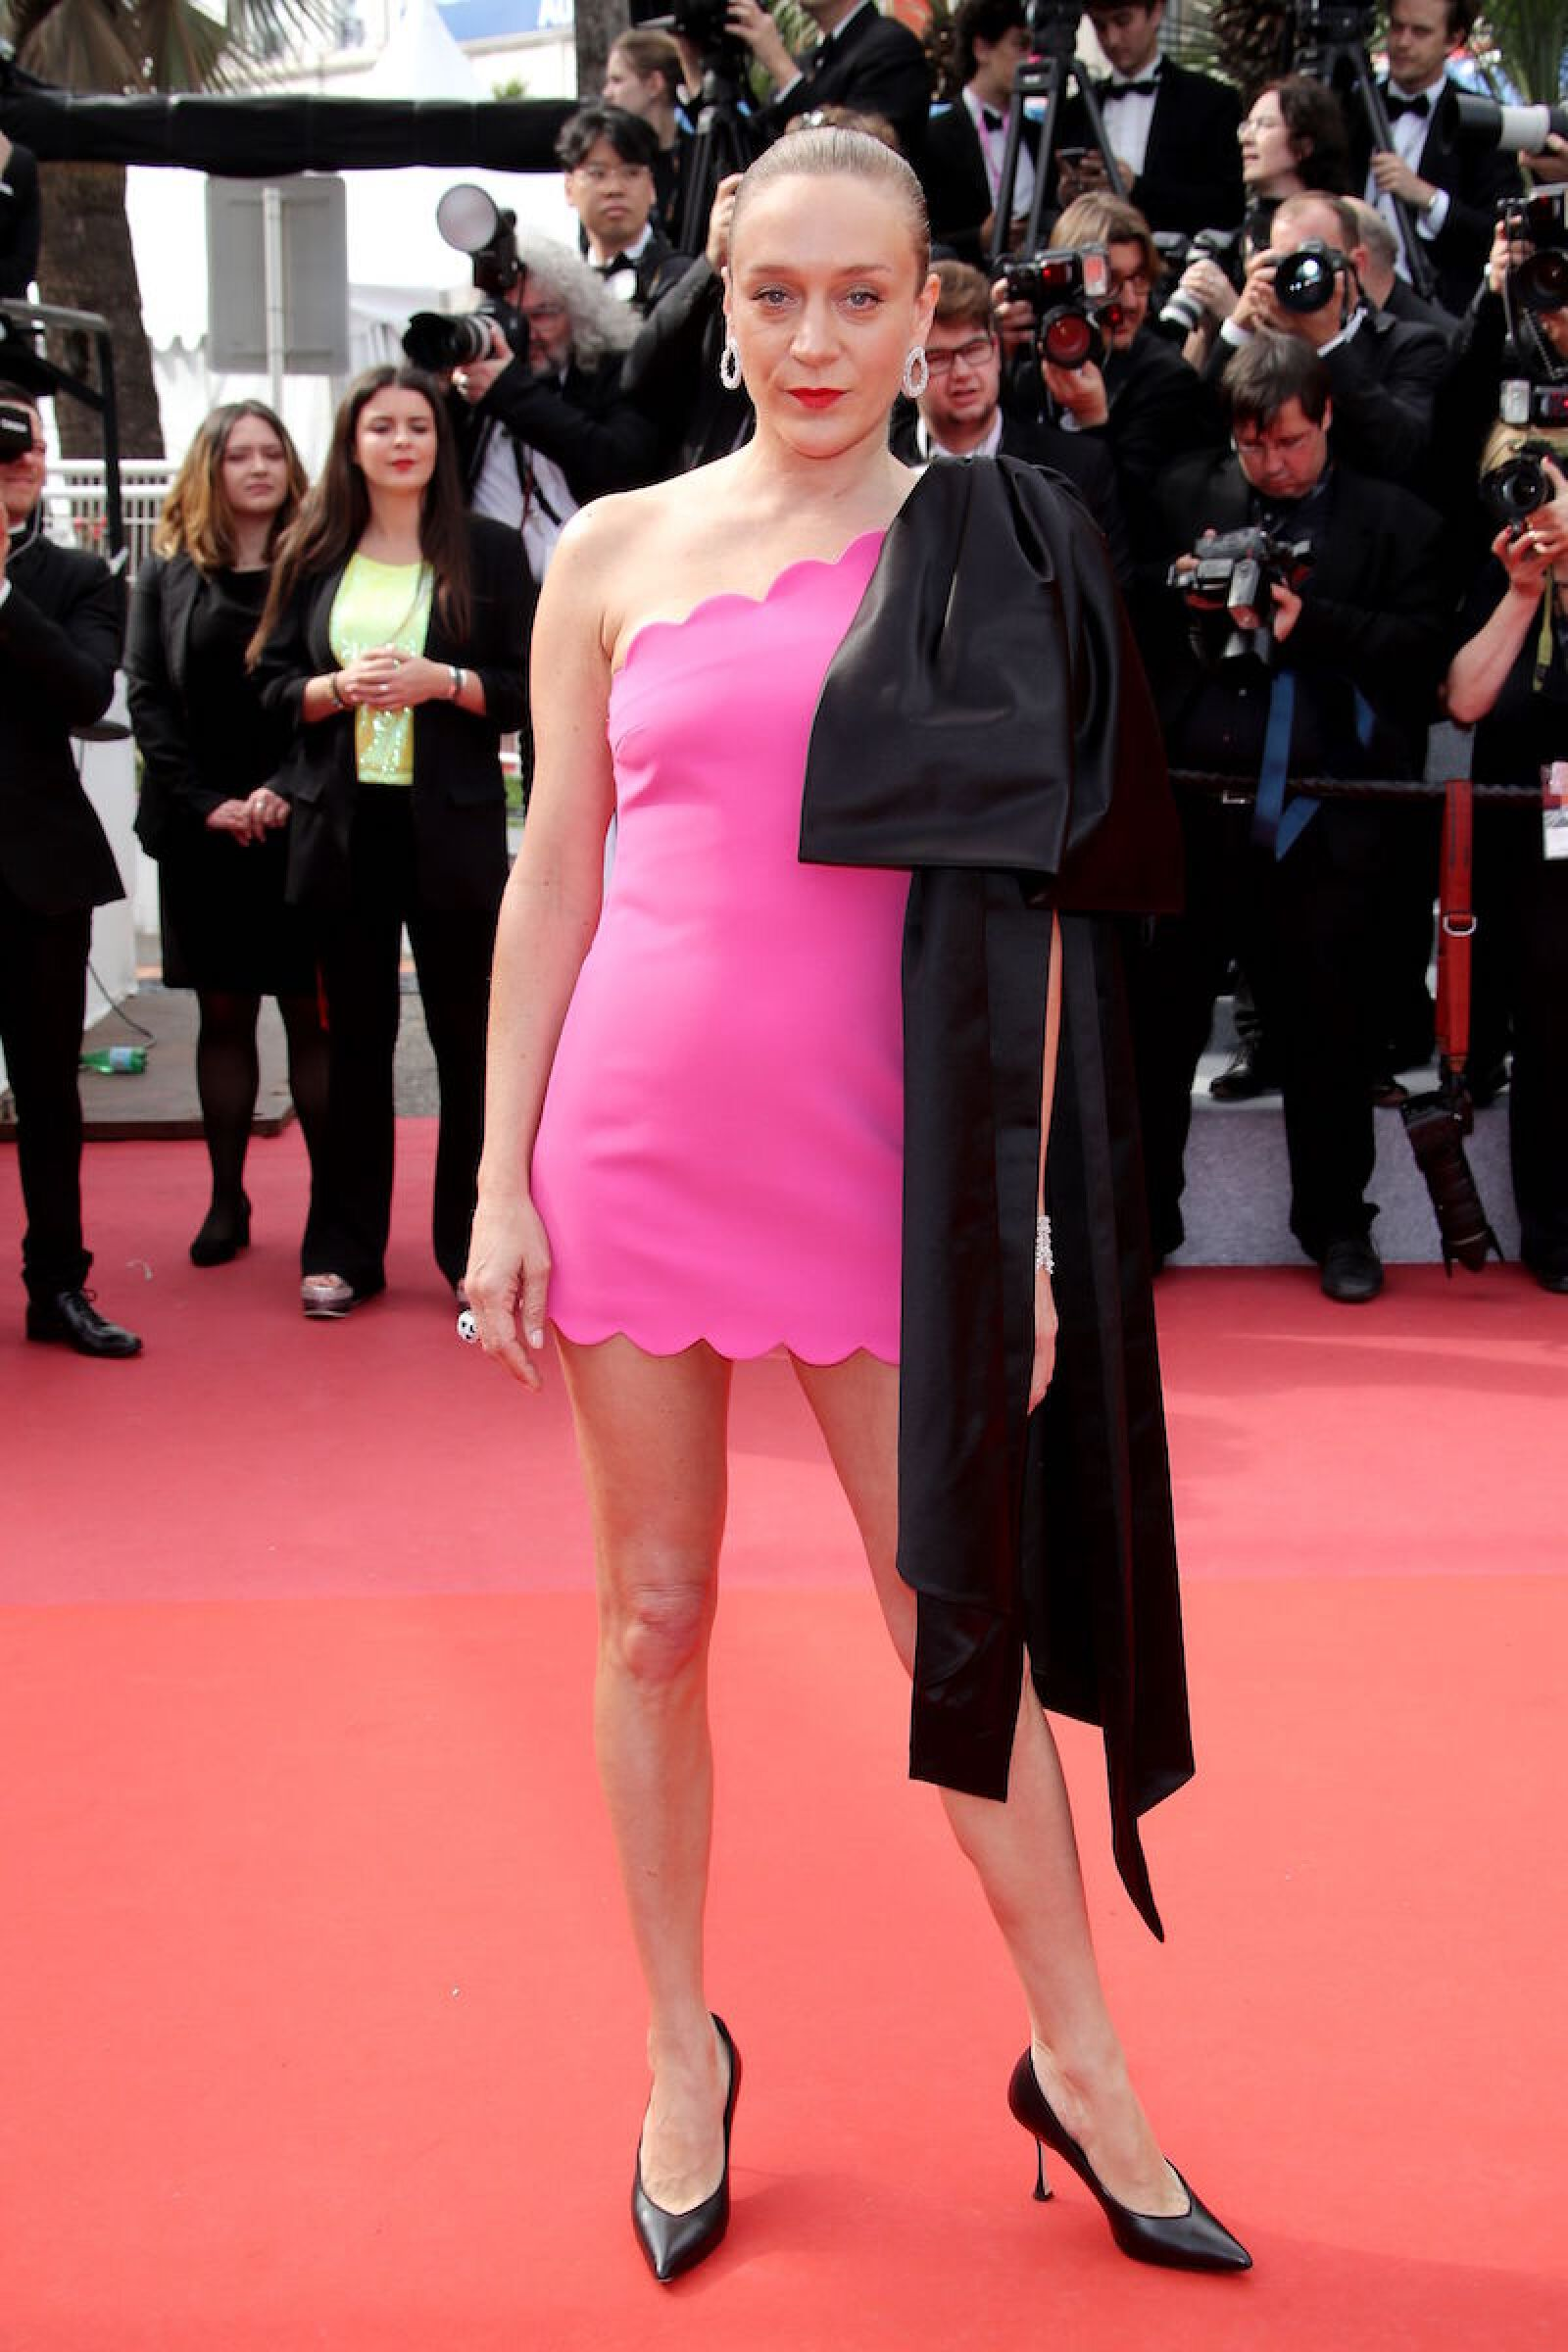 'Once Upon a Time In... Hollywood' premiere, 72nd Cannes Film Festival, France - 21 May 2019